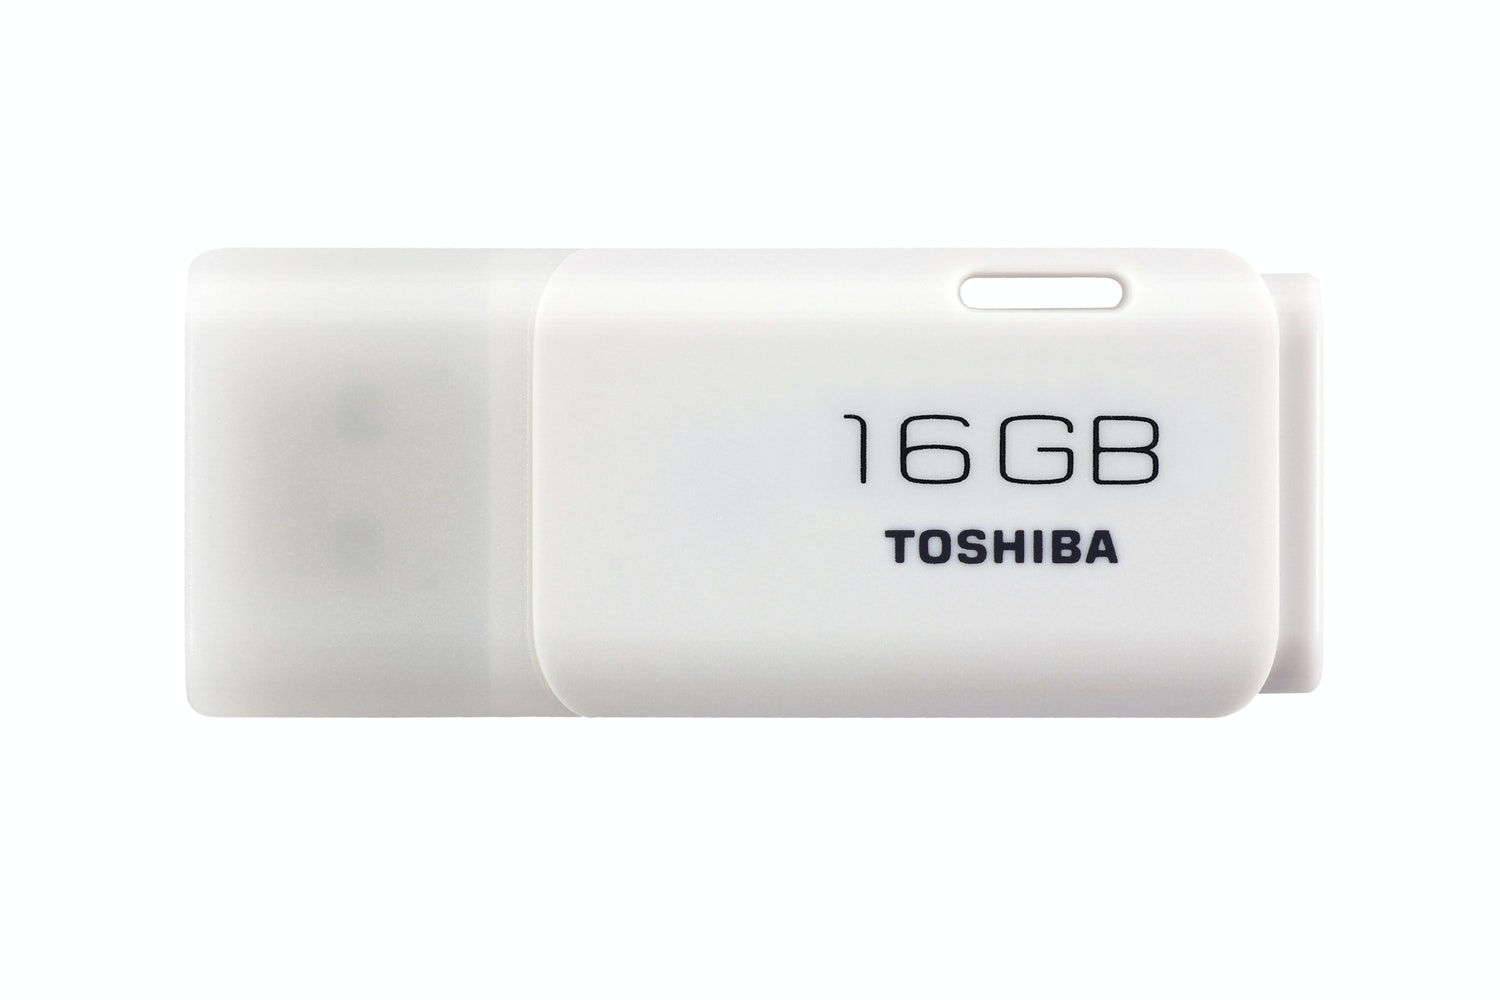 Toshiba 16GB USB flash drive | White